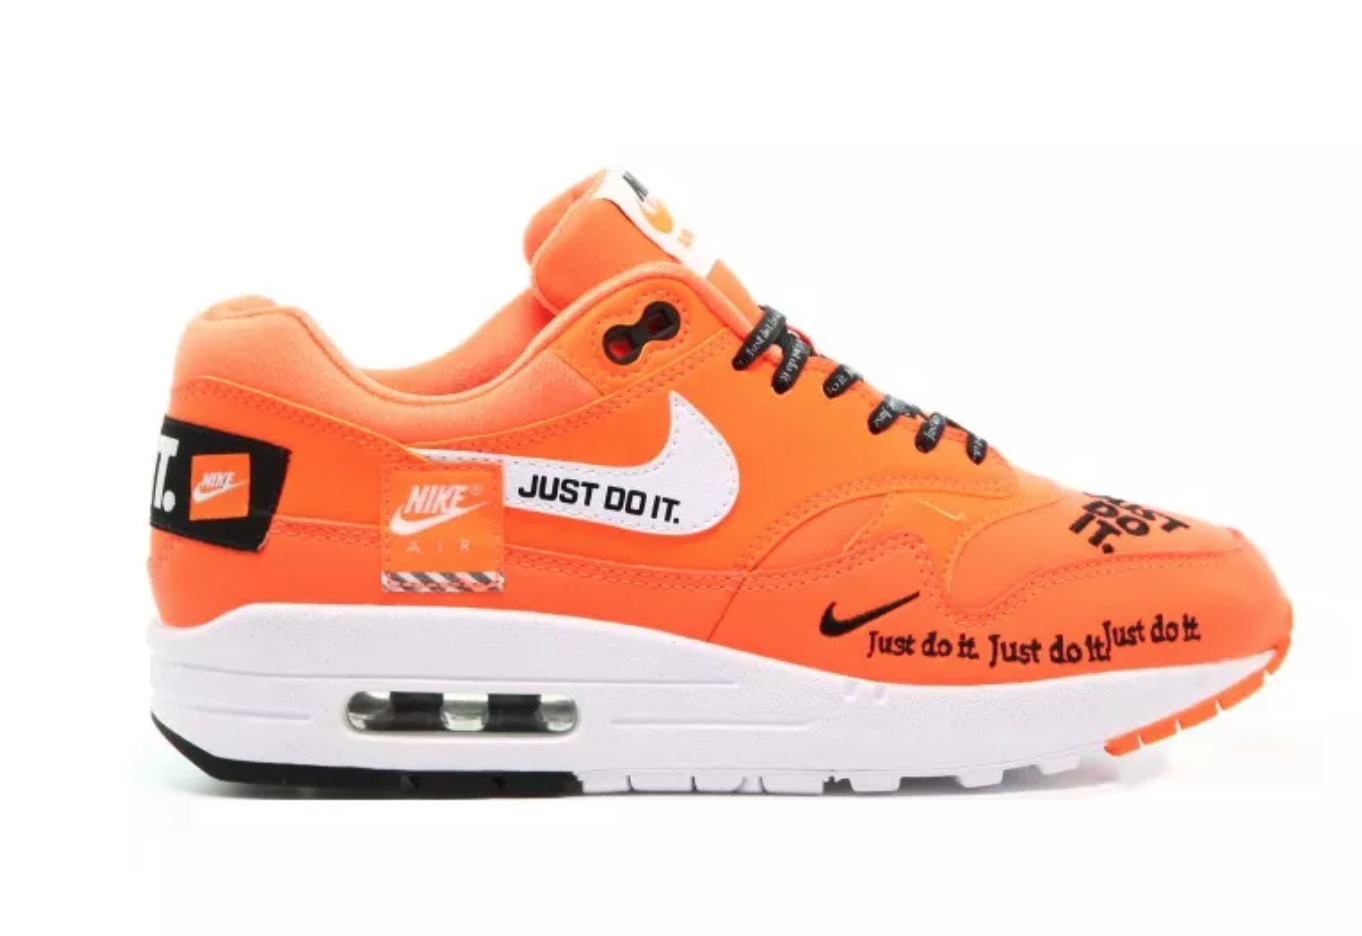 f9a1caac6 Are You Going To Cop Nike's Air Max 1 LX 'Total Orange'?